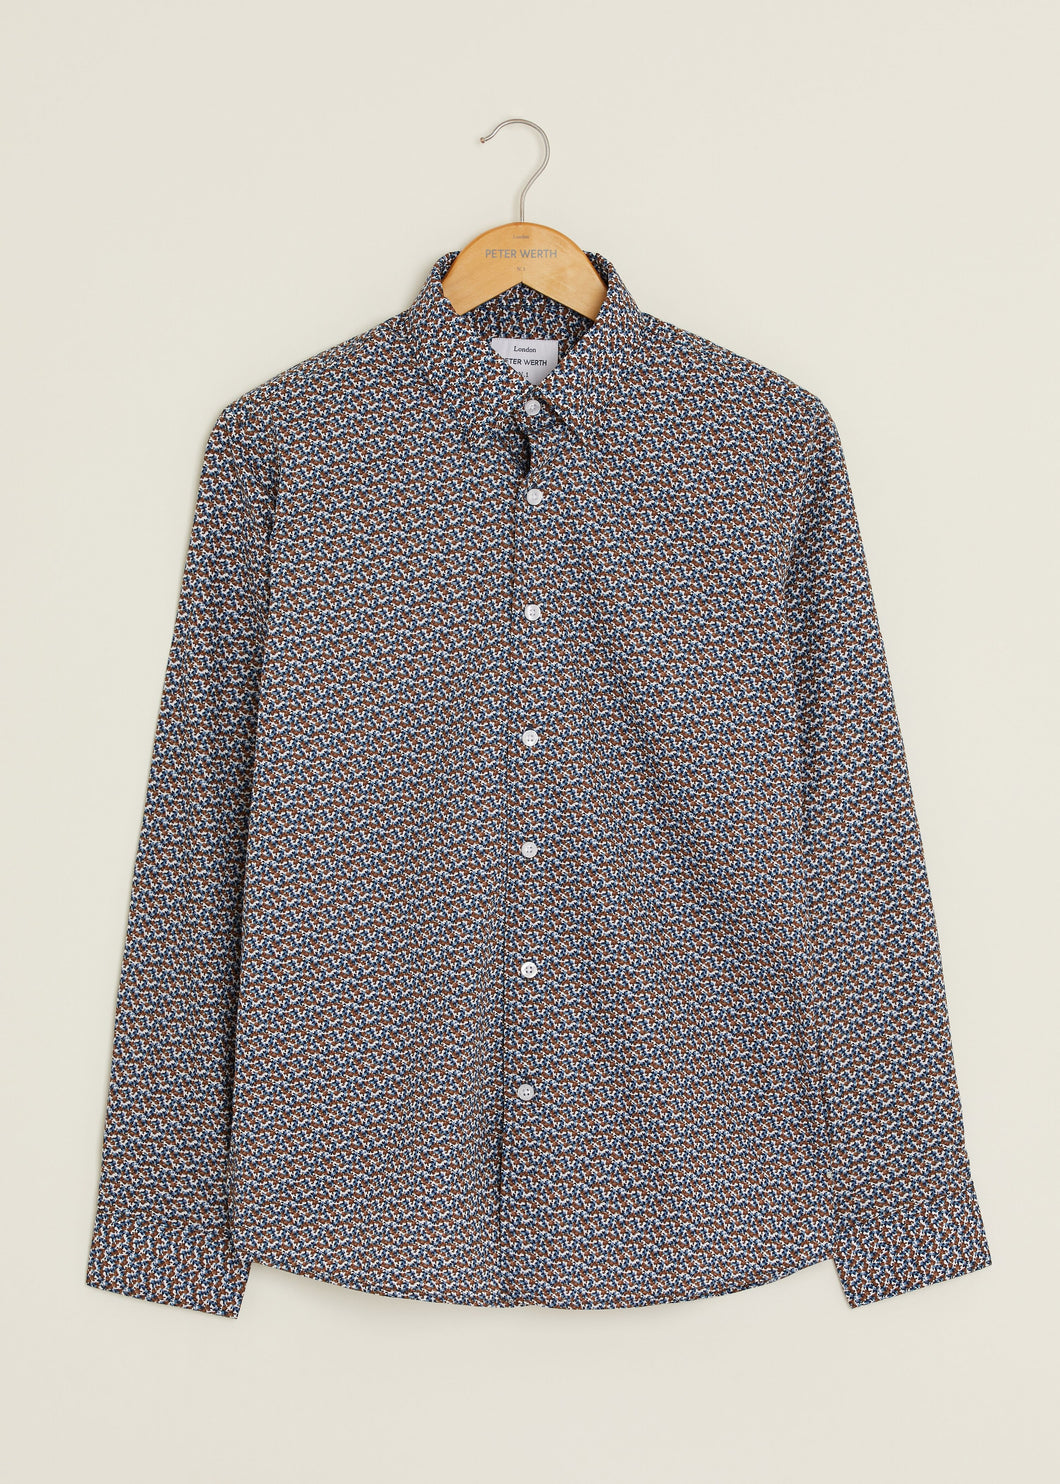 Gray Long Sleeved Shirt - Multi